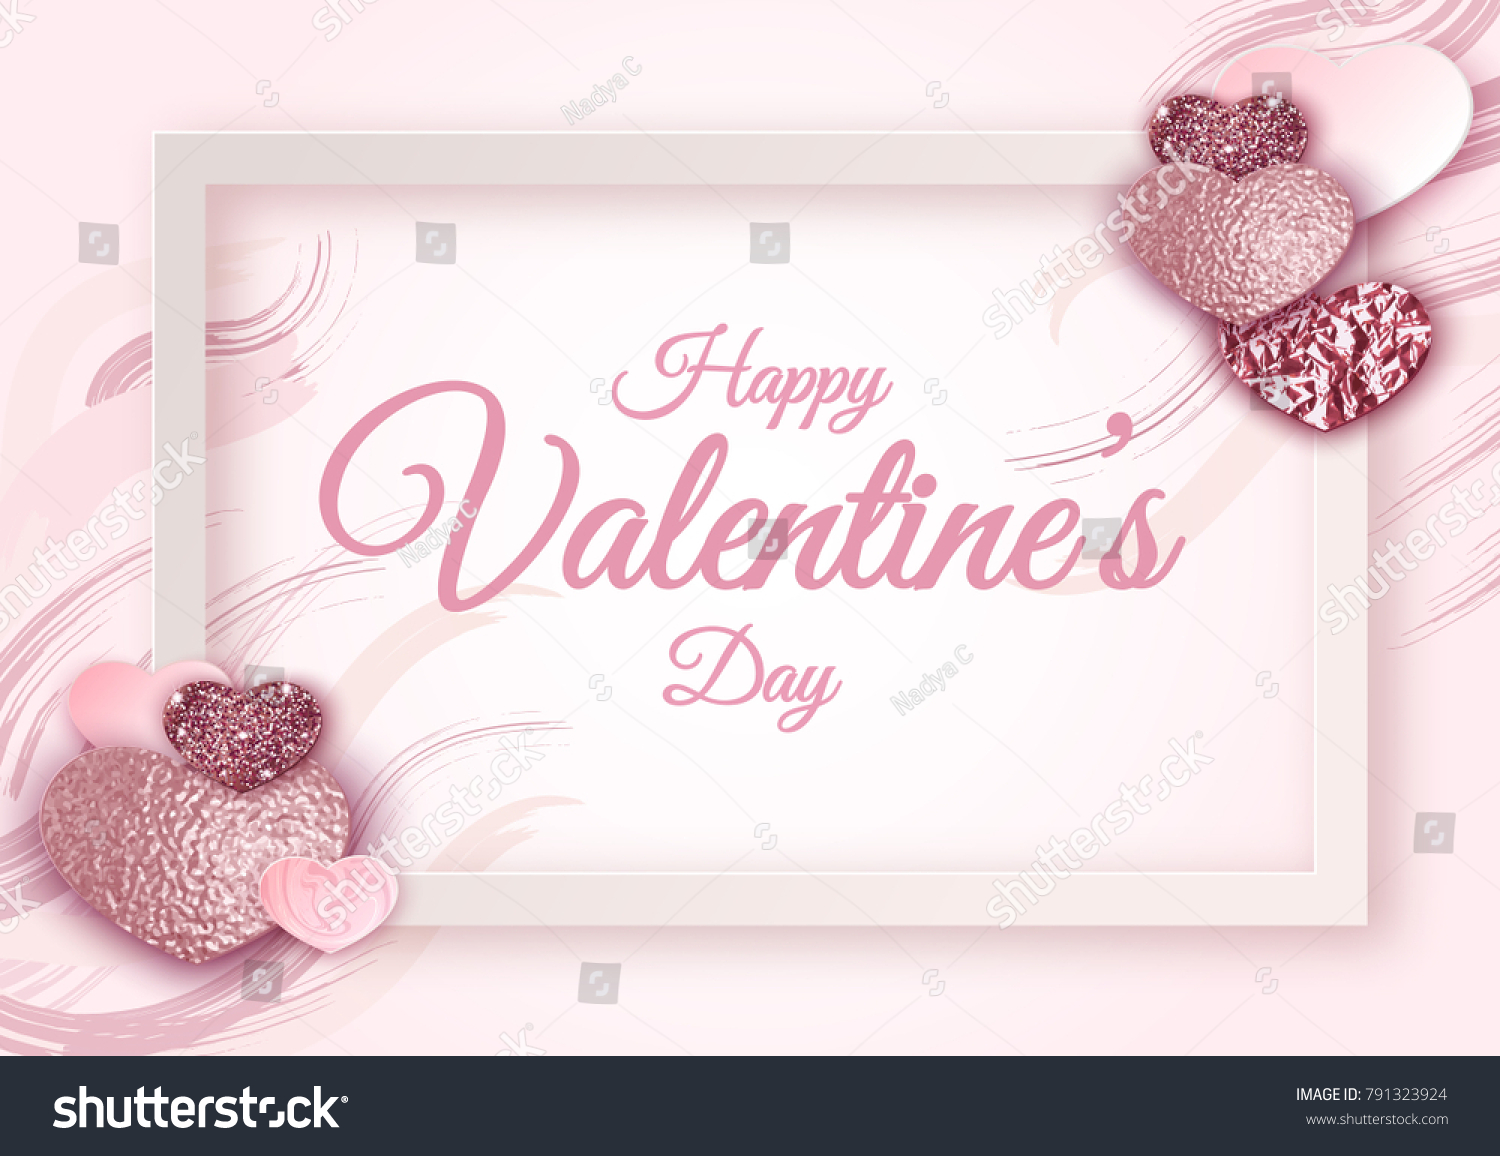 Great Wallpaper Marble Heart - stock-vector-geometric-valentine-day-frame-marble-texture-background-in-trendy-minimalistic-style-heart-791323924  You Should Have_41774.jpg